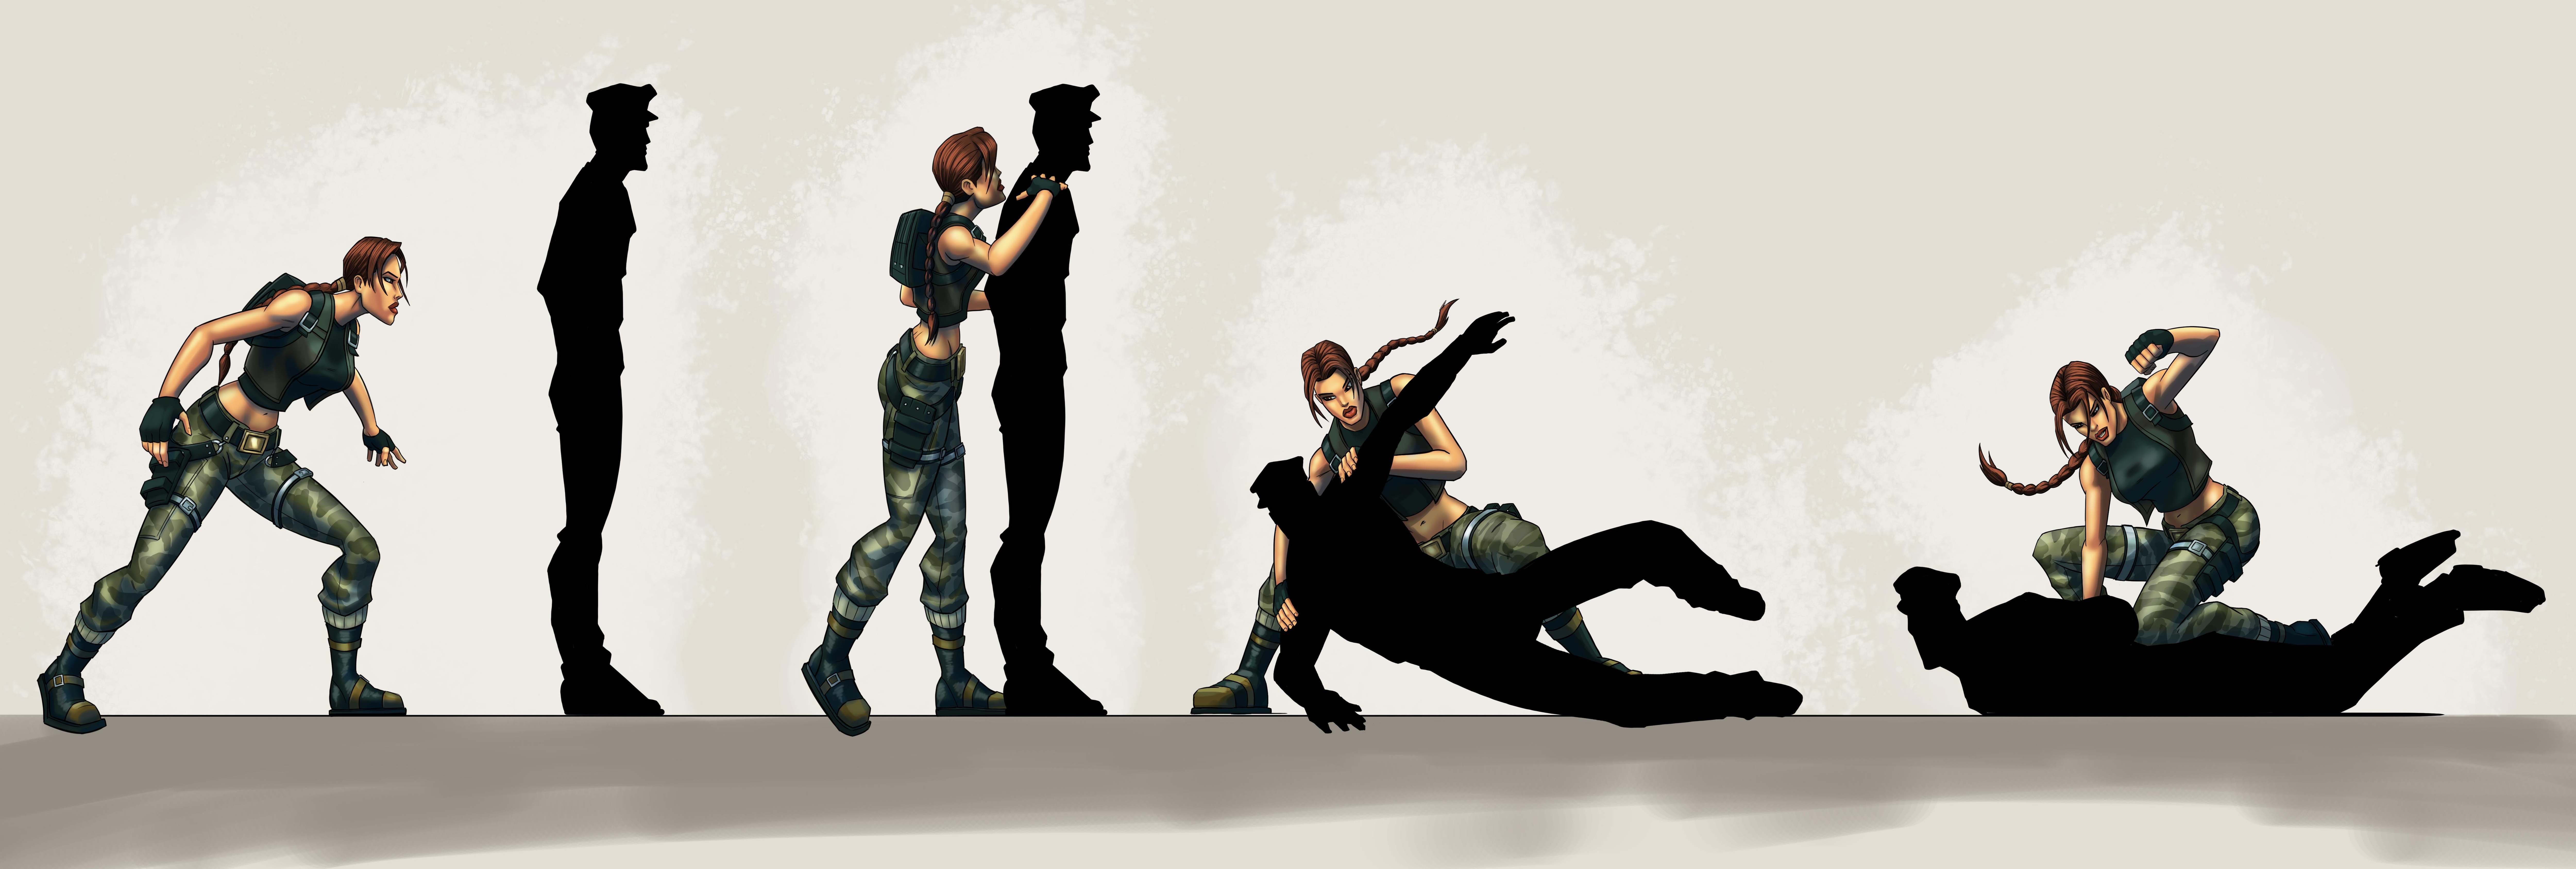 A graphic of Lara doing a stealth takedown animation